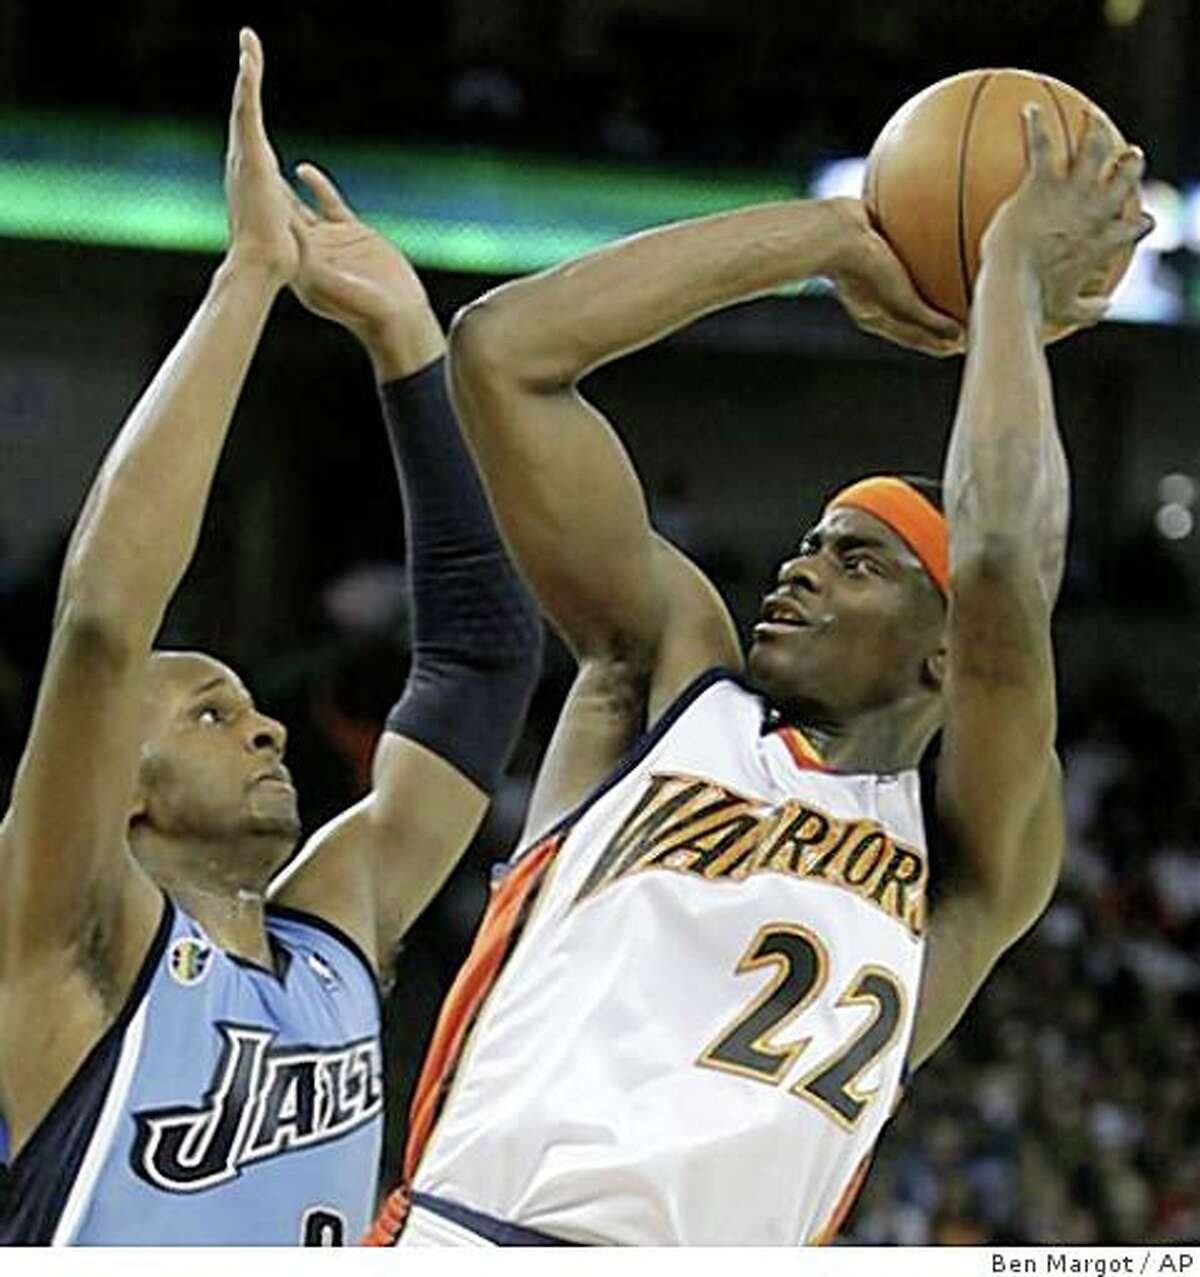 Utah Jazz' C.J. Miles, left, guards Golden State Warriors' Anthony Morrow during the first half of an NBA basketball game Sunday, March 1, 2009, in Oakland, Calif. (AP Photo/Ben Margot)